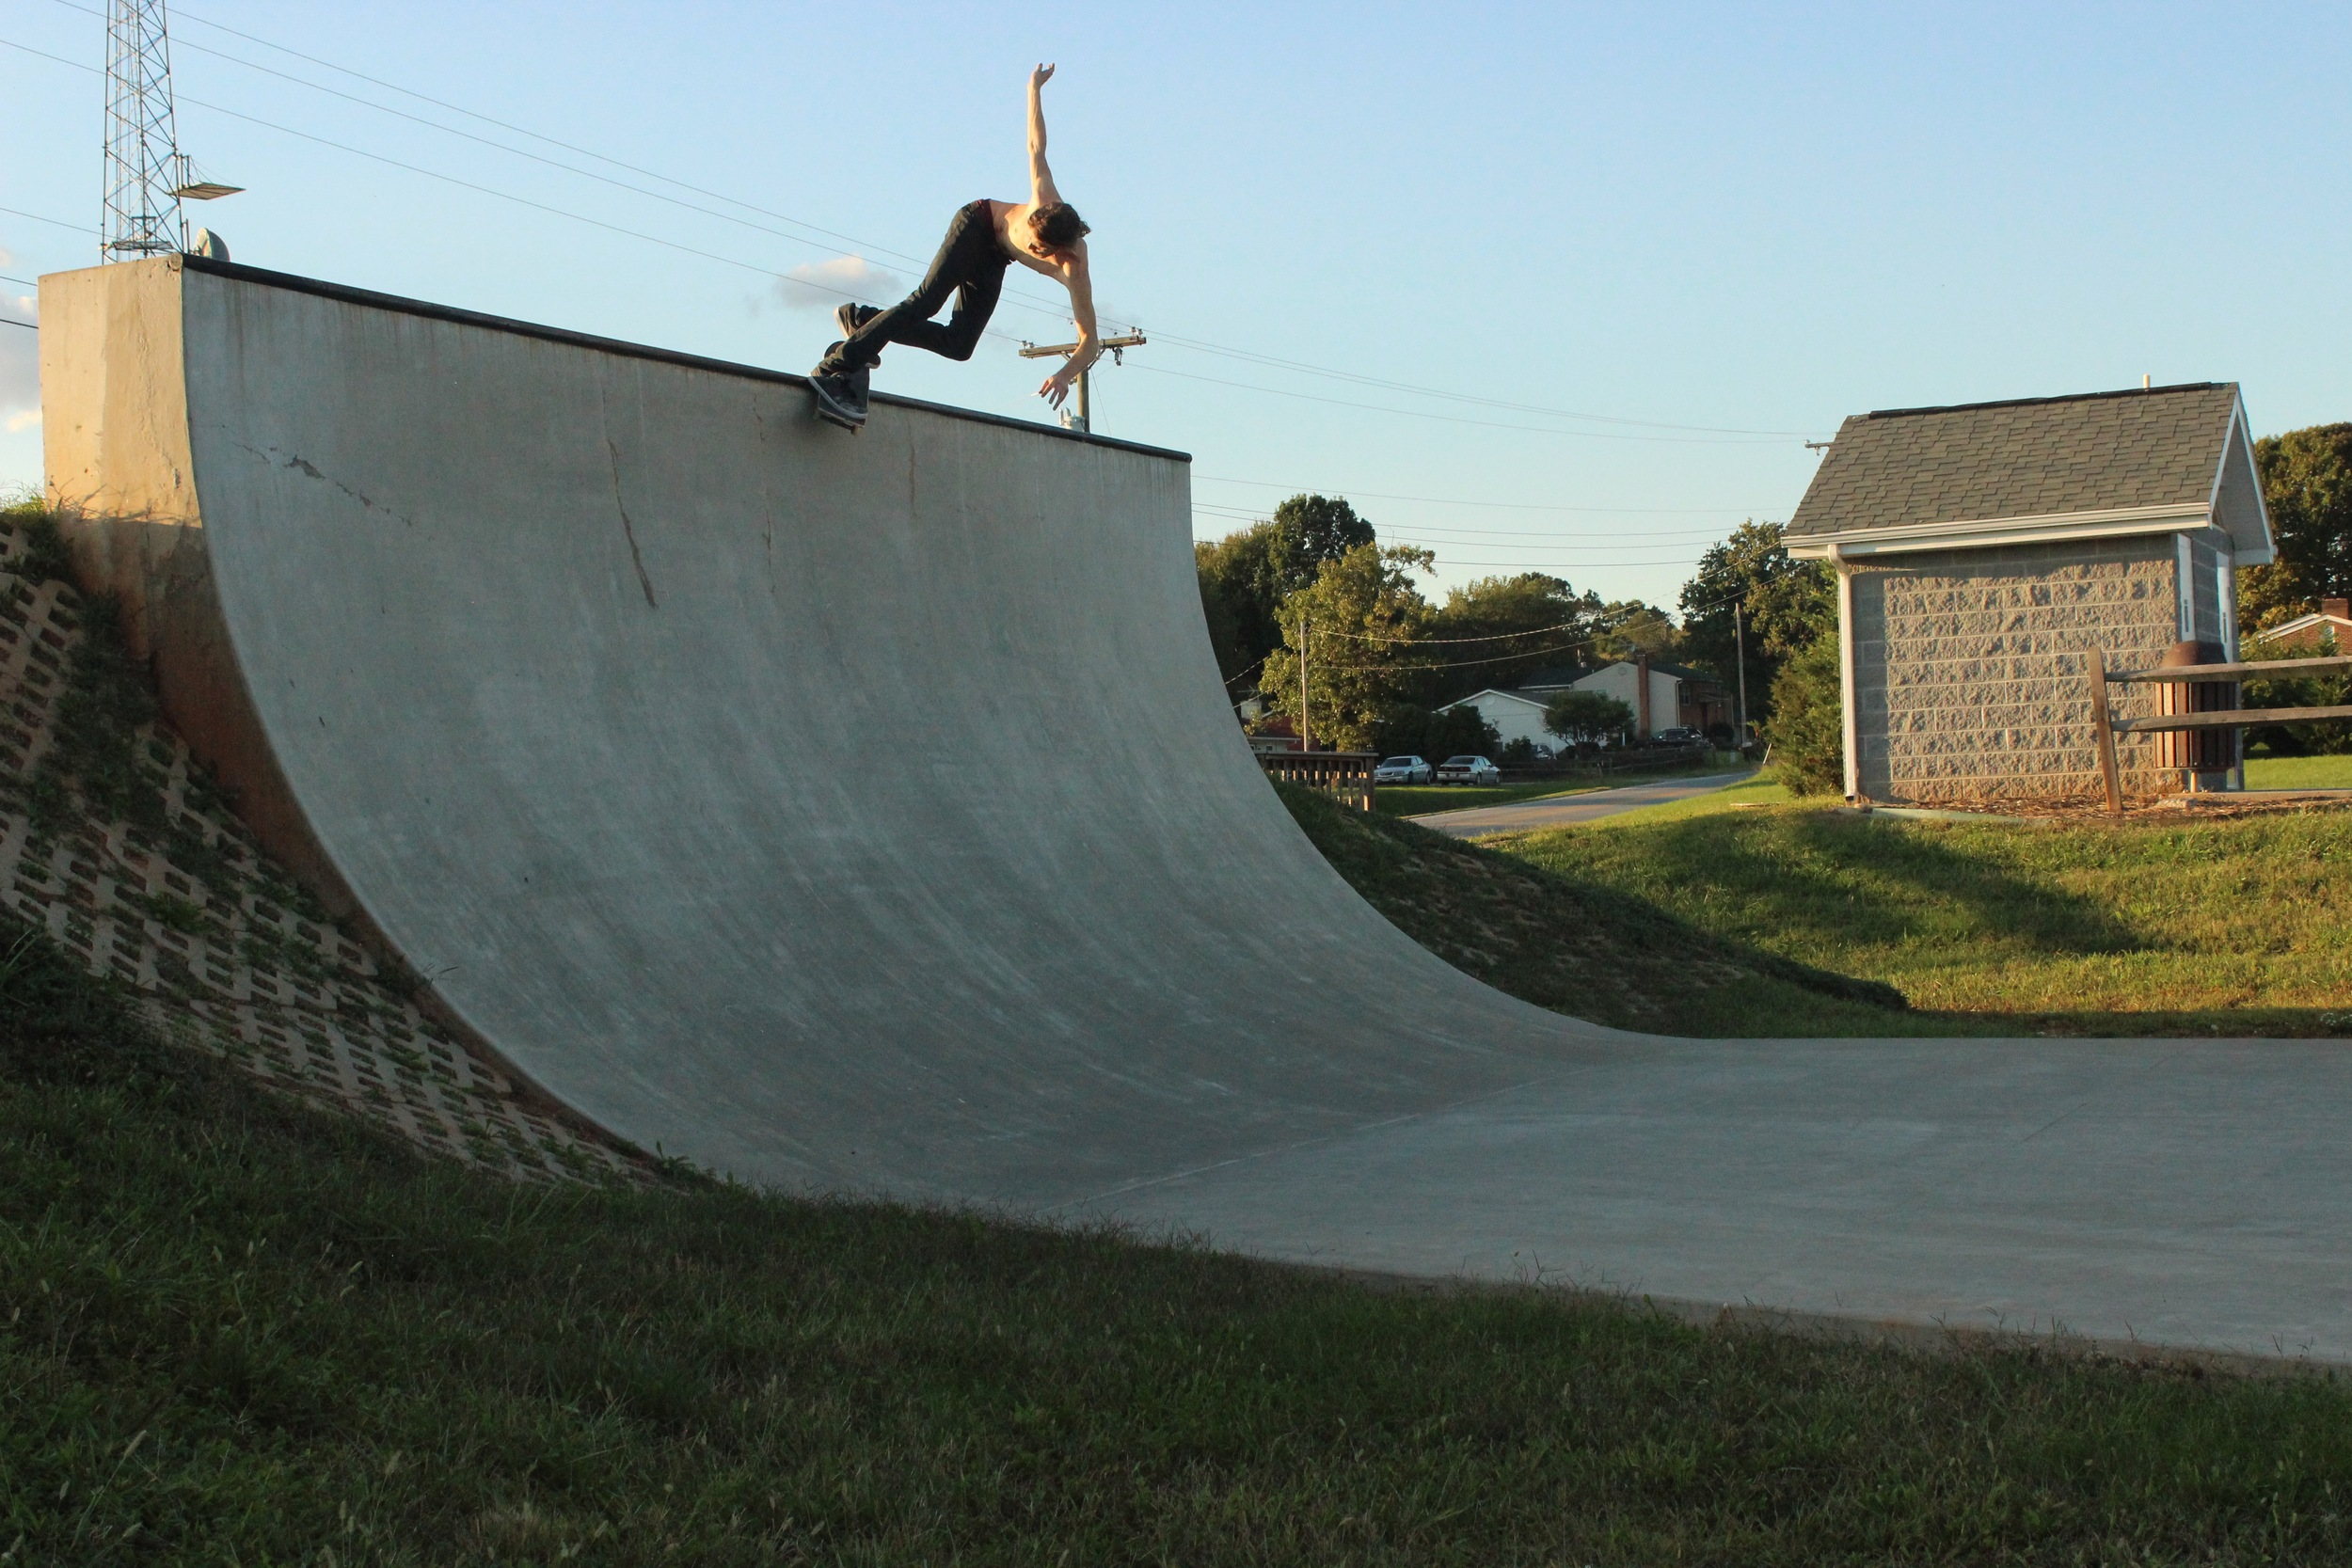 Nick - Back smith in Virginia